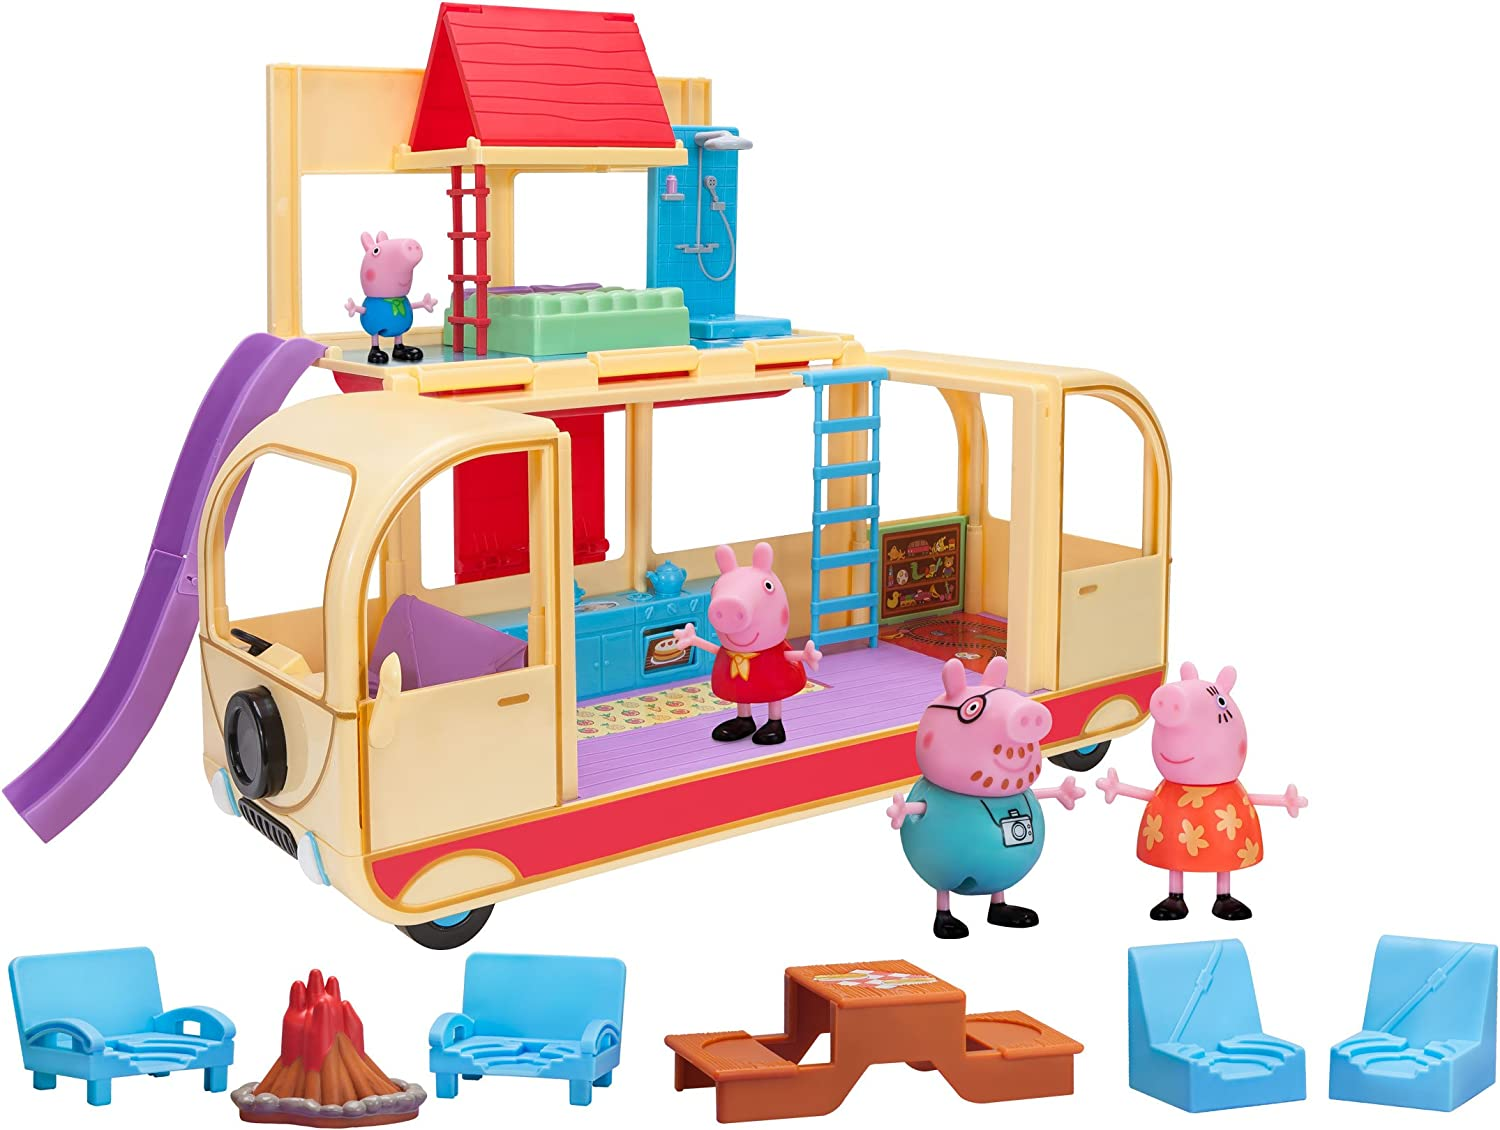 Top 6 Best Peppa Pig Toy (2020 Reviews & Buying Guide) 2